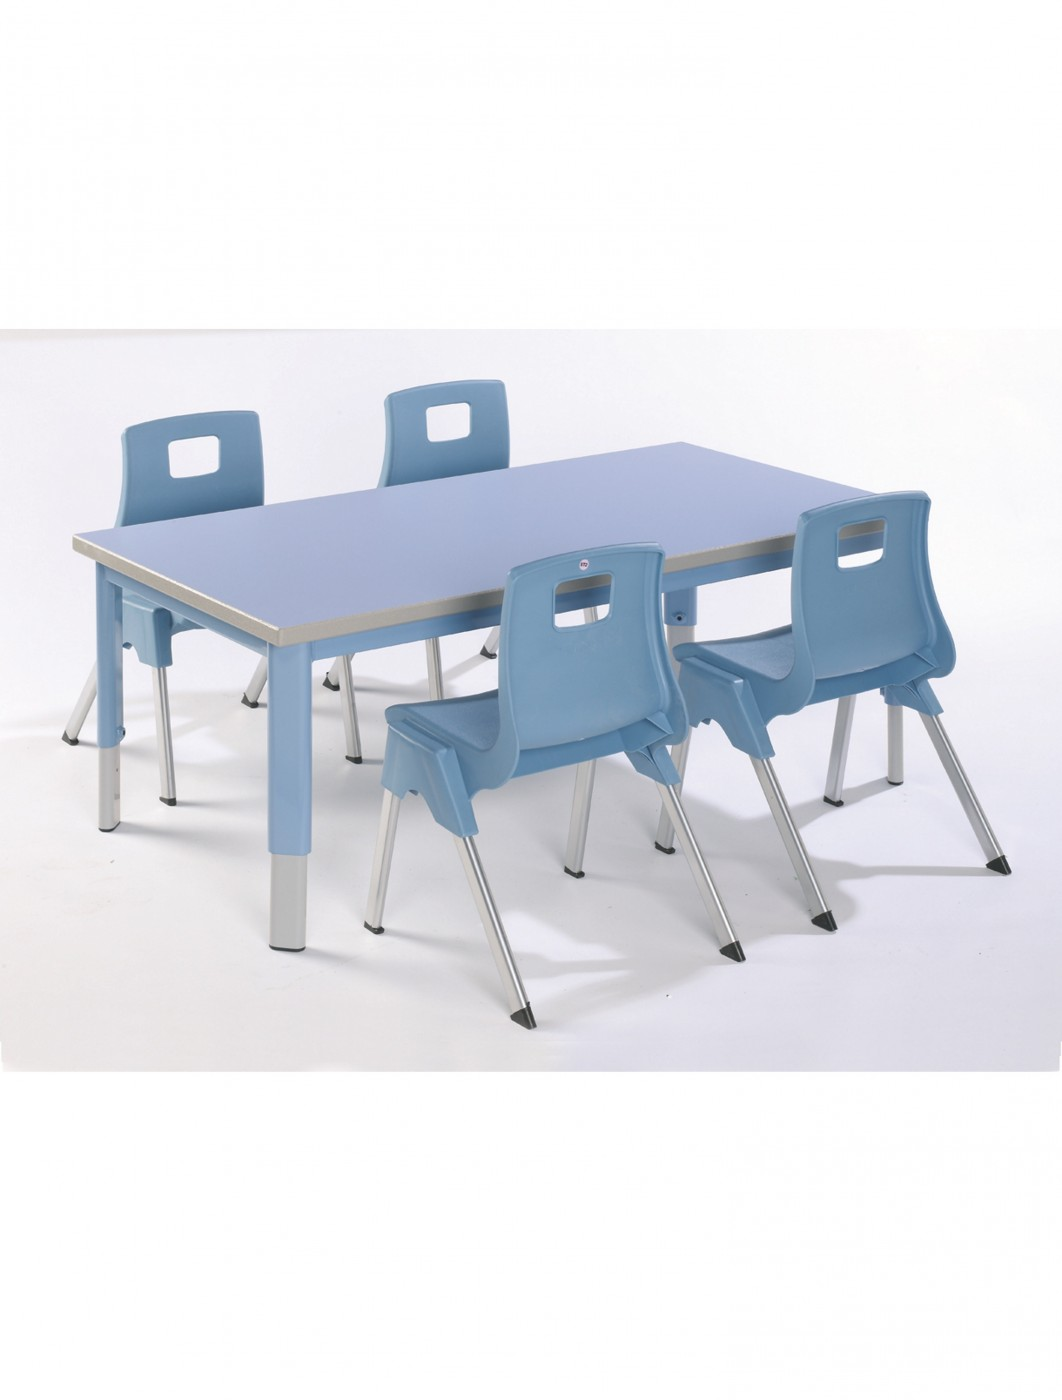 Preschool Table. Preschool Table A - Systym.co